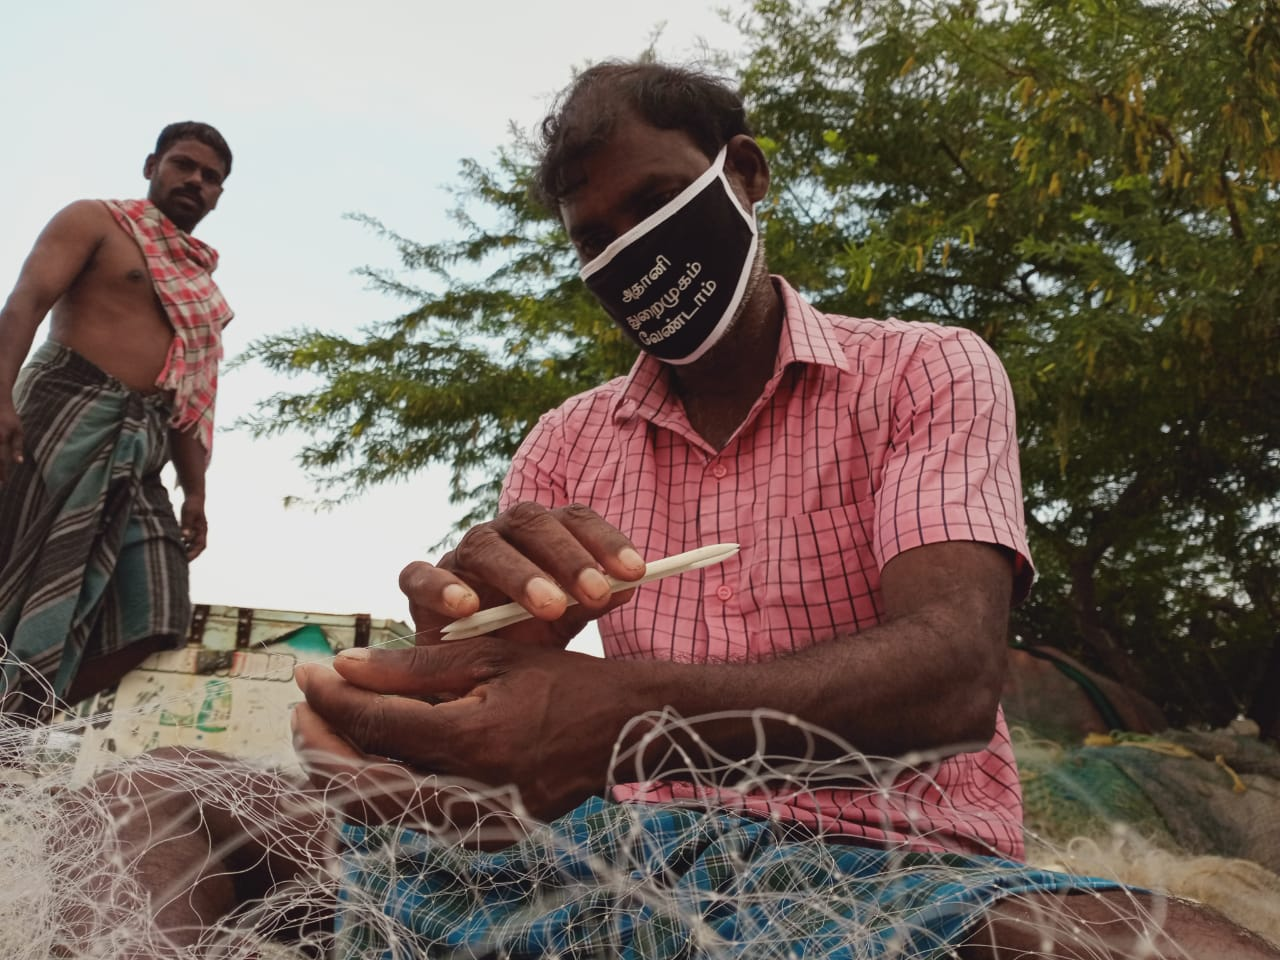 2. The stretches of the sea that Adani intends to convert into port lands are referred to as the Reserve Bank of India by local fishermen. It is a veritable cornucopia that supplies nets full of fish, shrimp and sea crab.